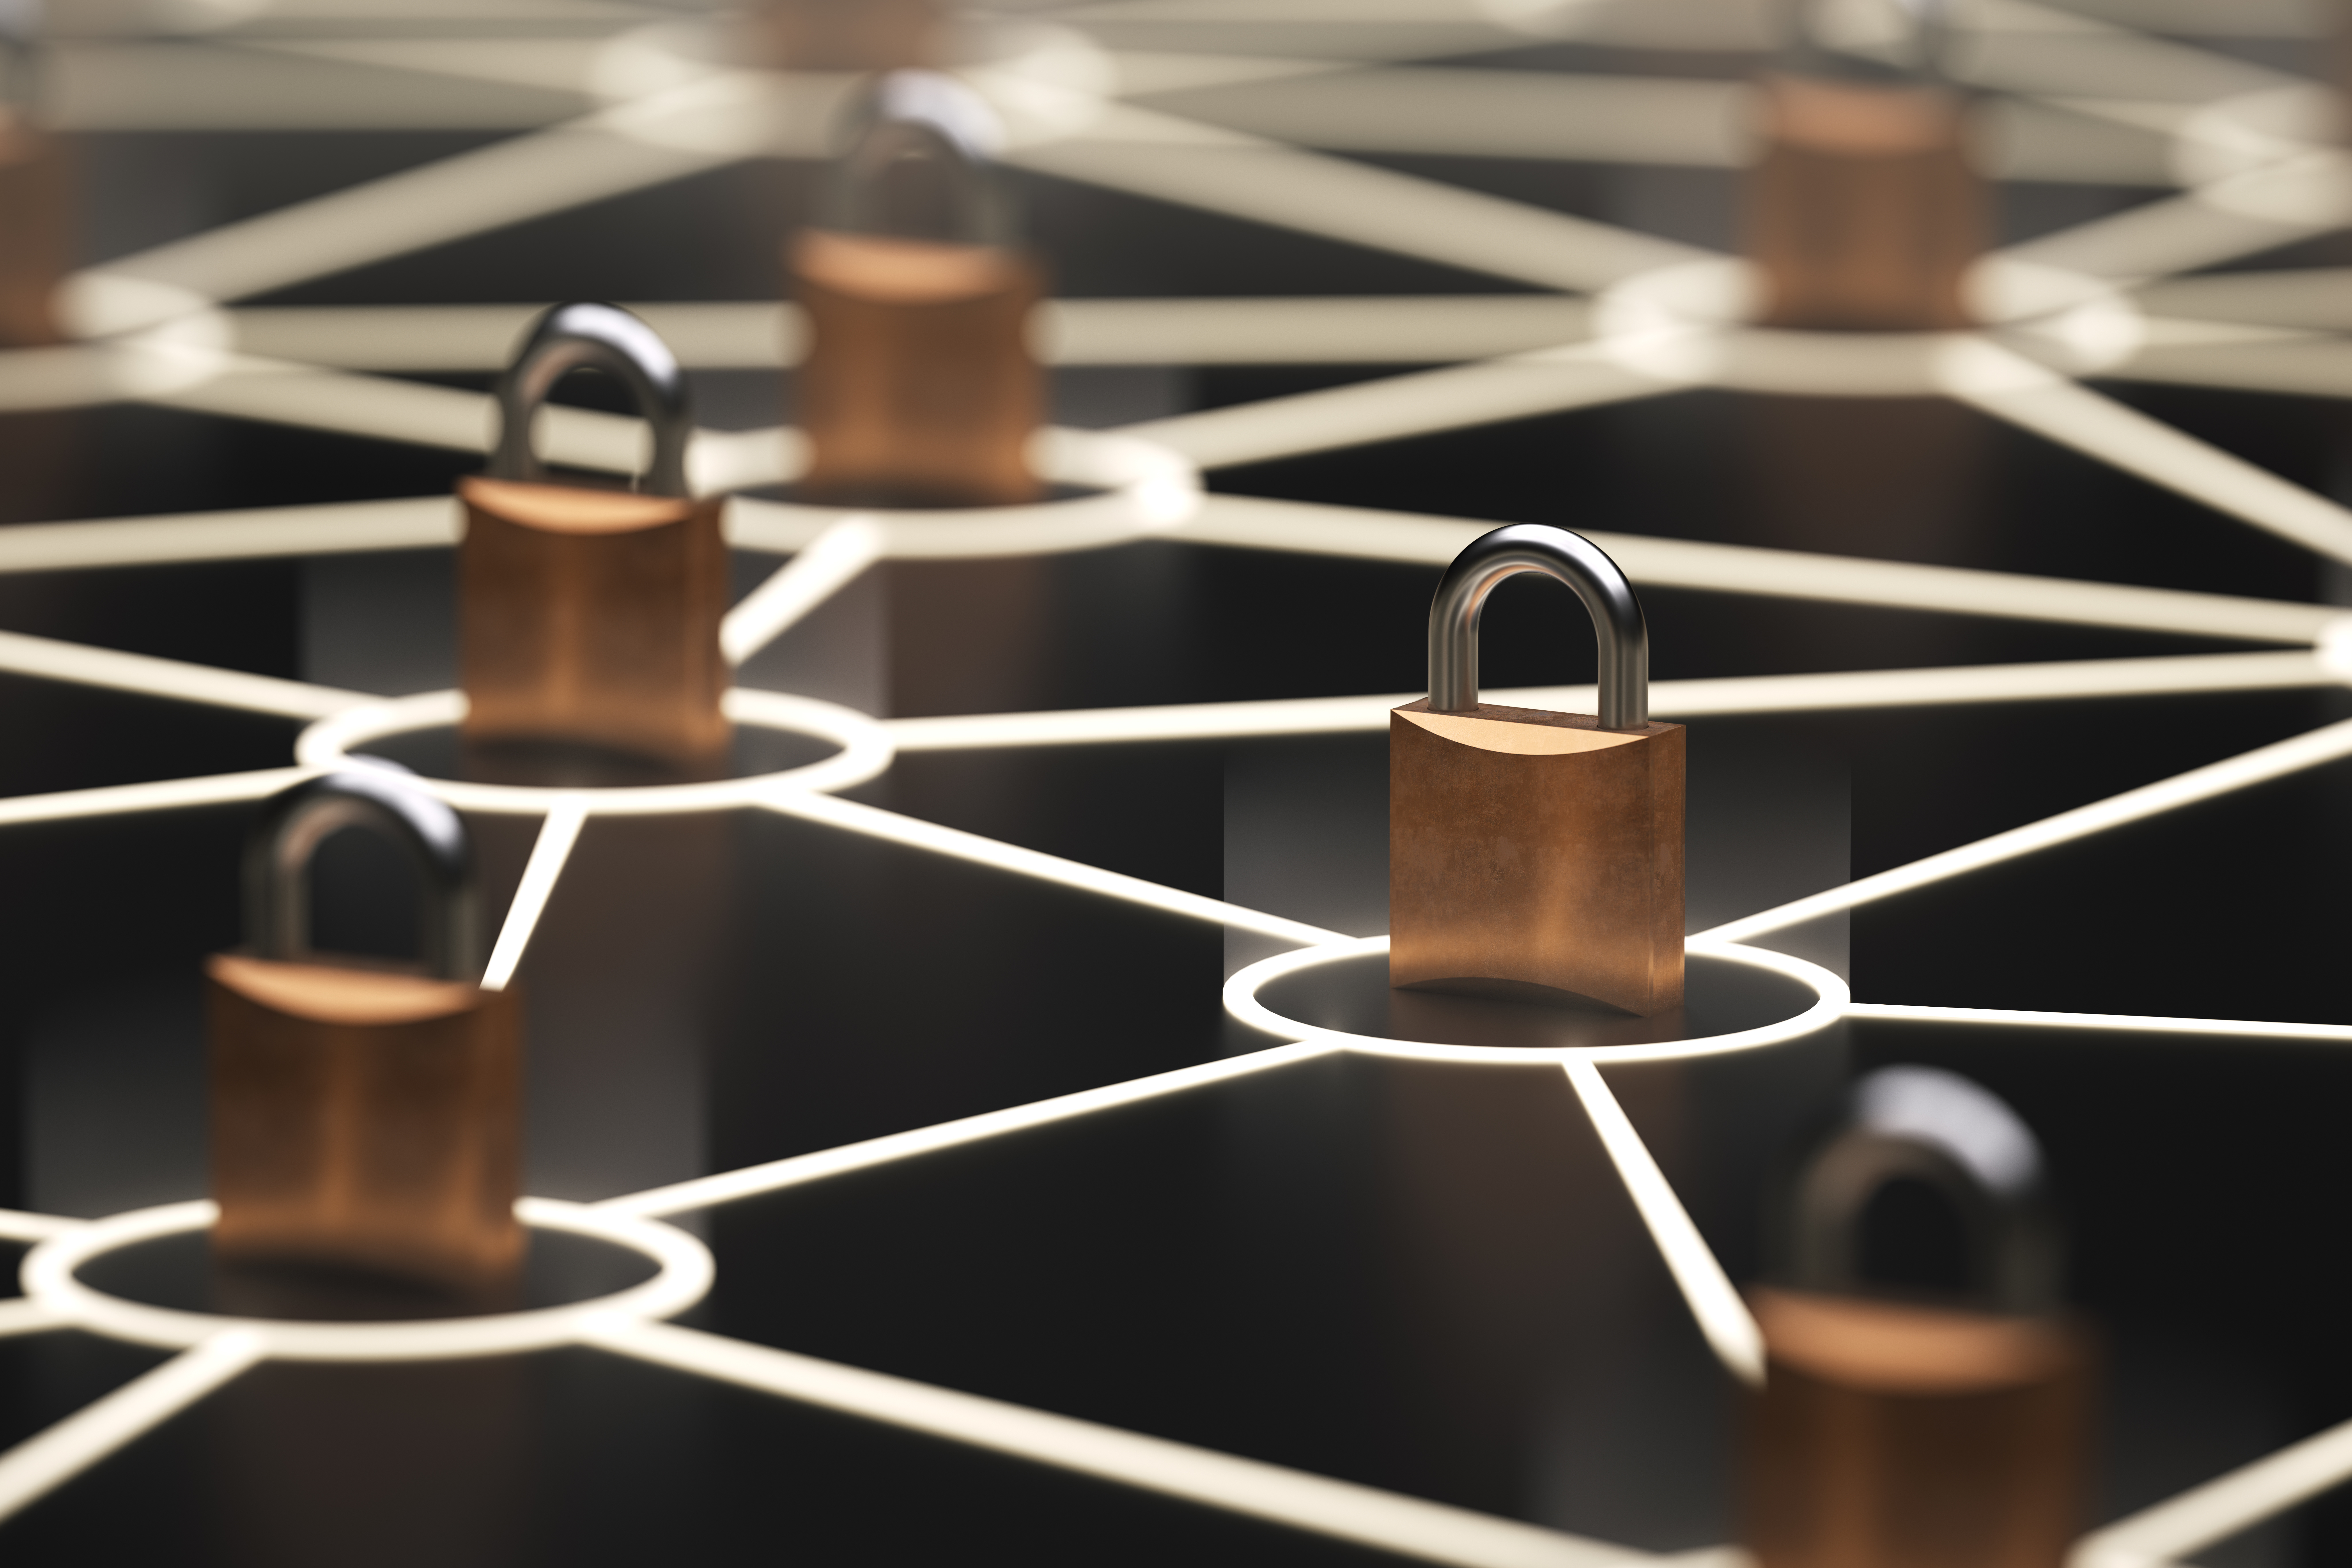 Data privacy can give businesses a competitive advantage